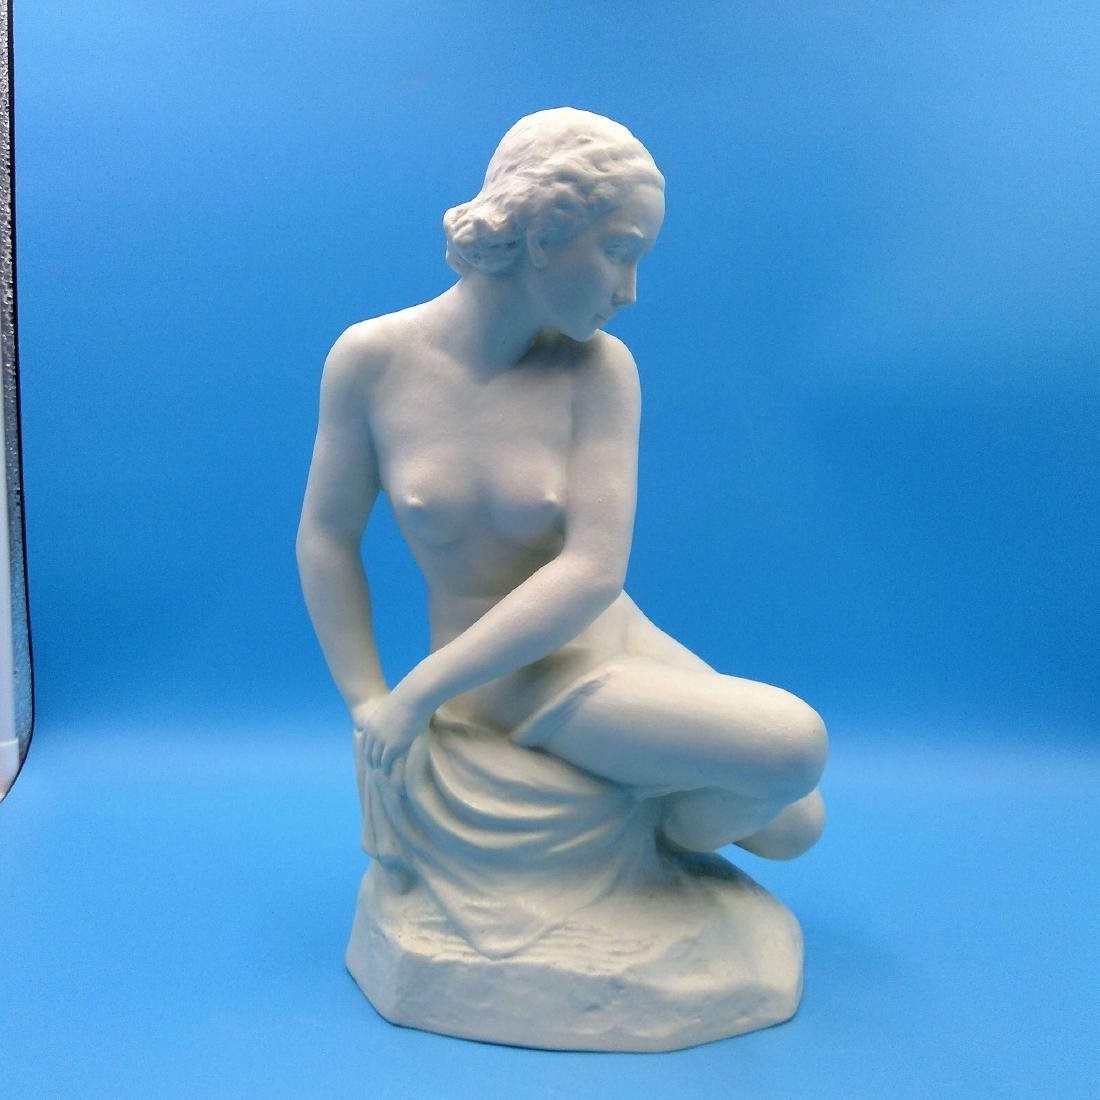 ROSENTHAL GERMAN PORCELAIN NUDE SCULPTURE